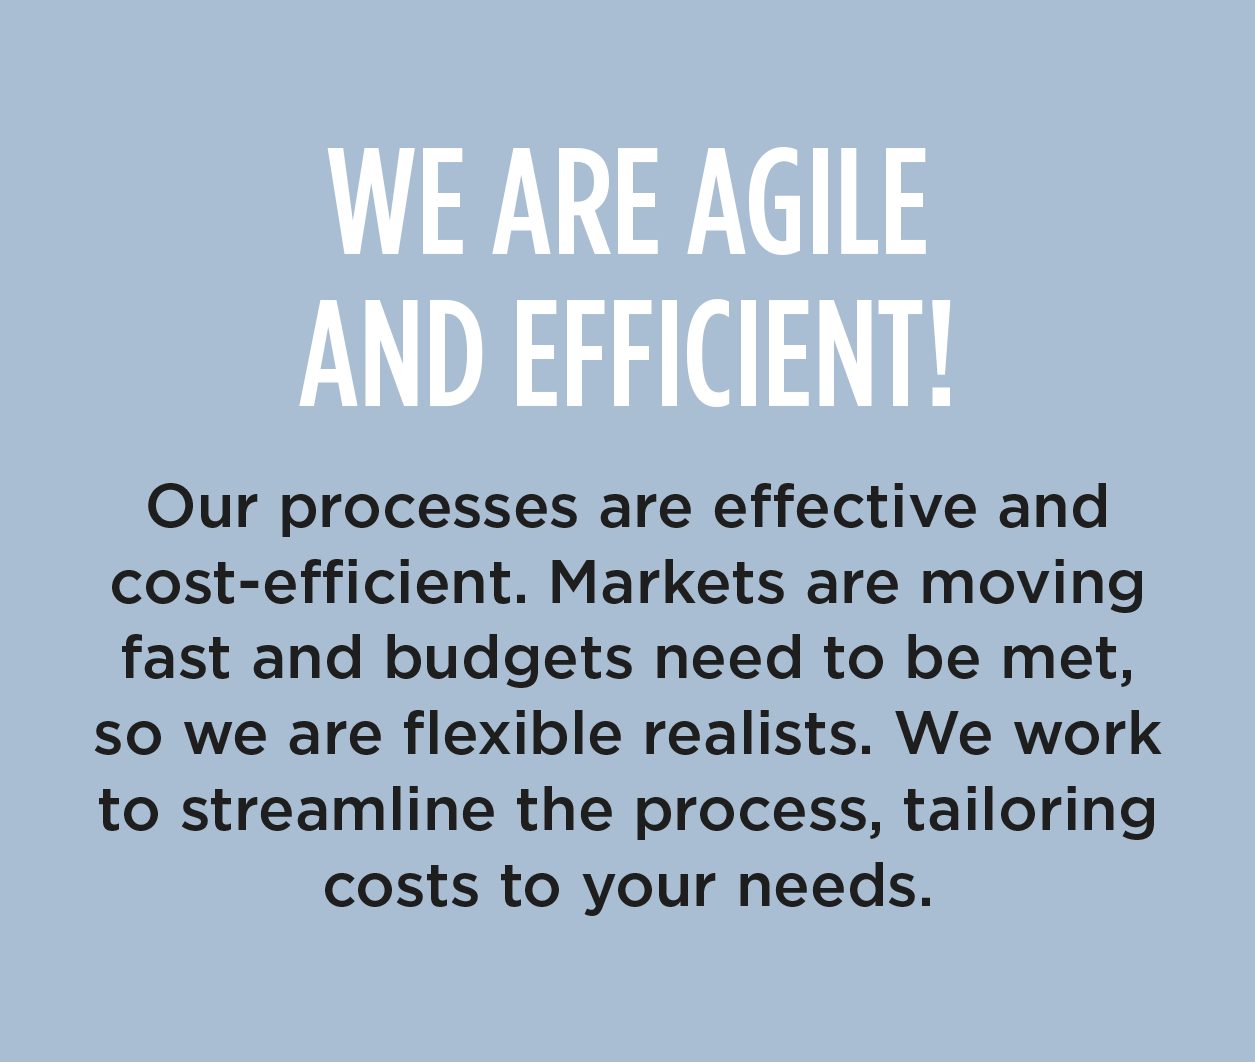 WE ARE AGILE AND EFFICIENT! - Our processes are effective and cost-efficient. Markets are moving fast and budgets need to be met, so we are flexible realists. We work to streamline the process, tailoring costs to your needs.